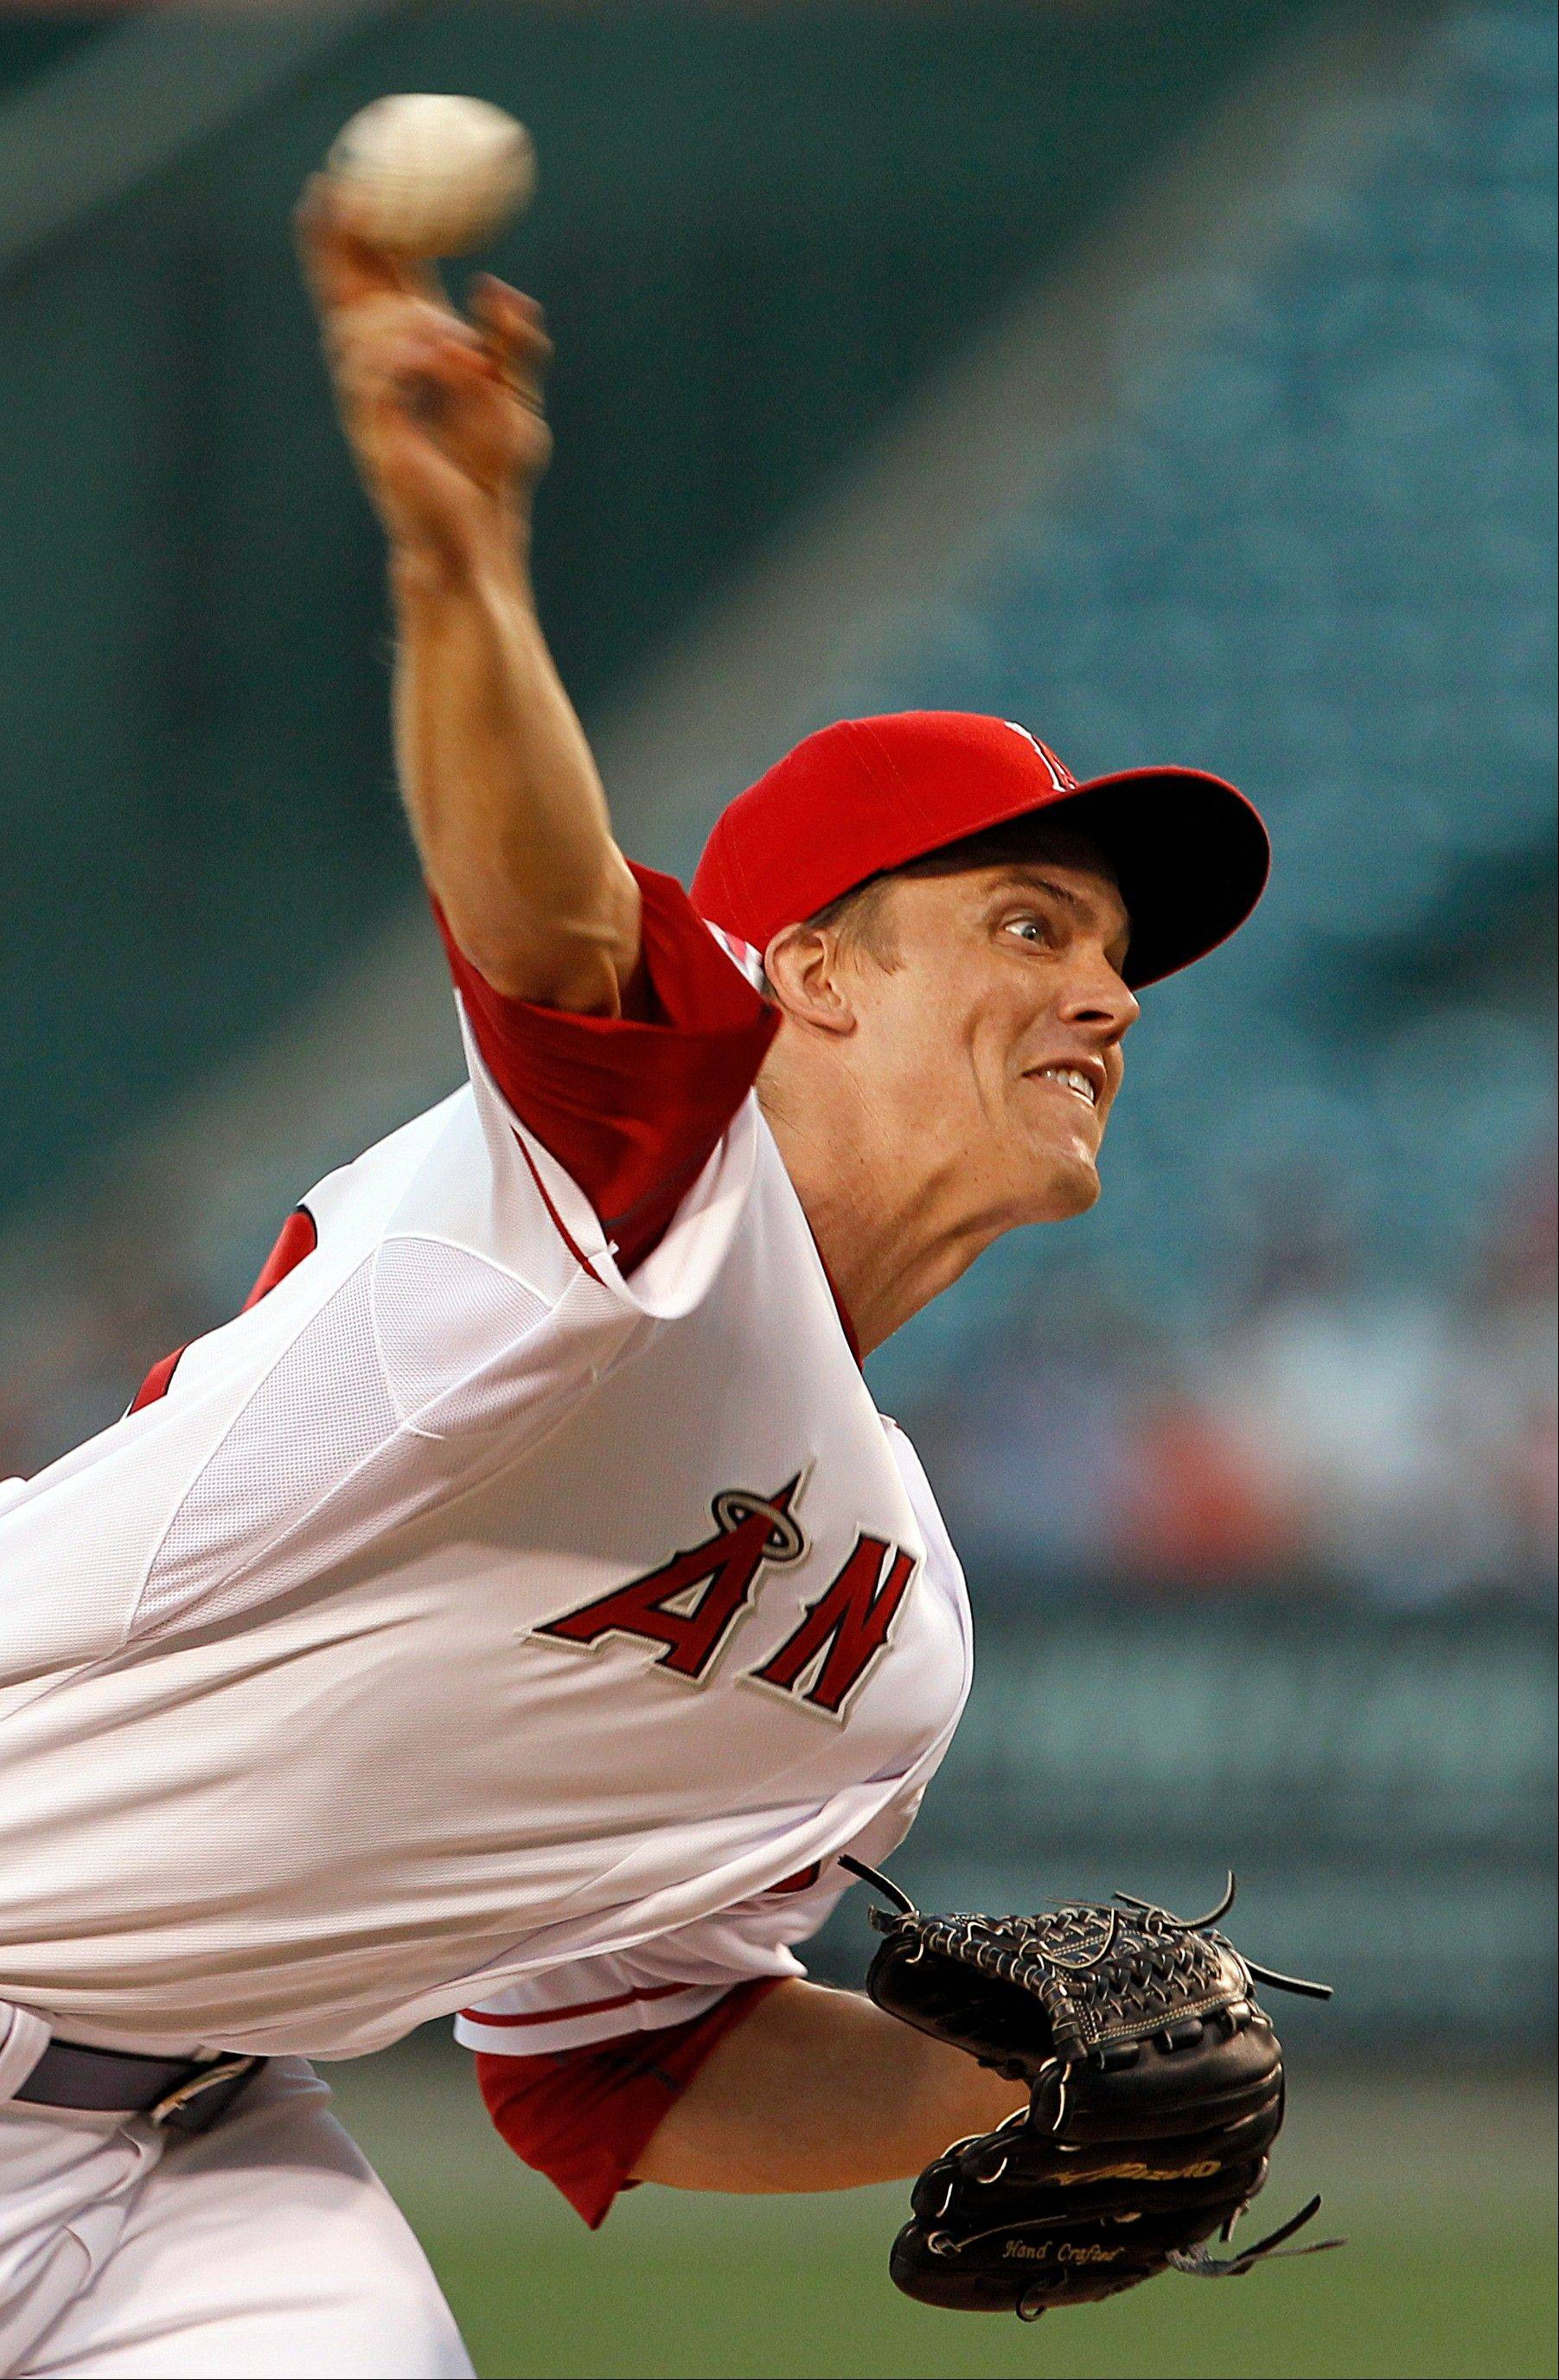 Los Angeles Angels starter Zack Greinke struck out five and walked one in a win over Cleveland on Tuesday at home.